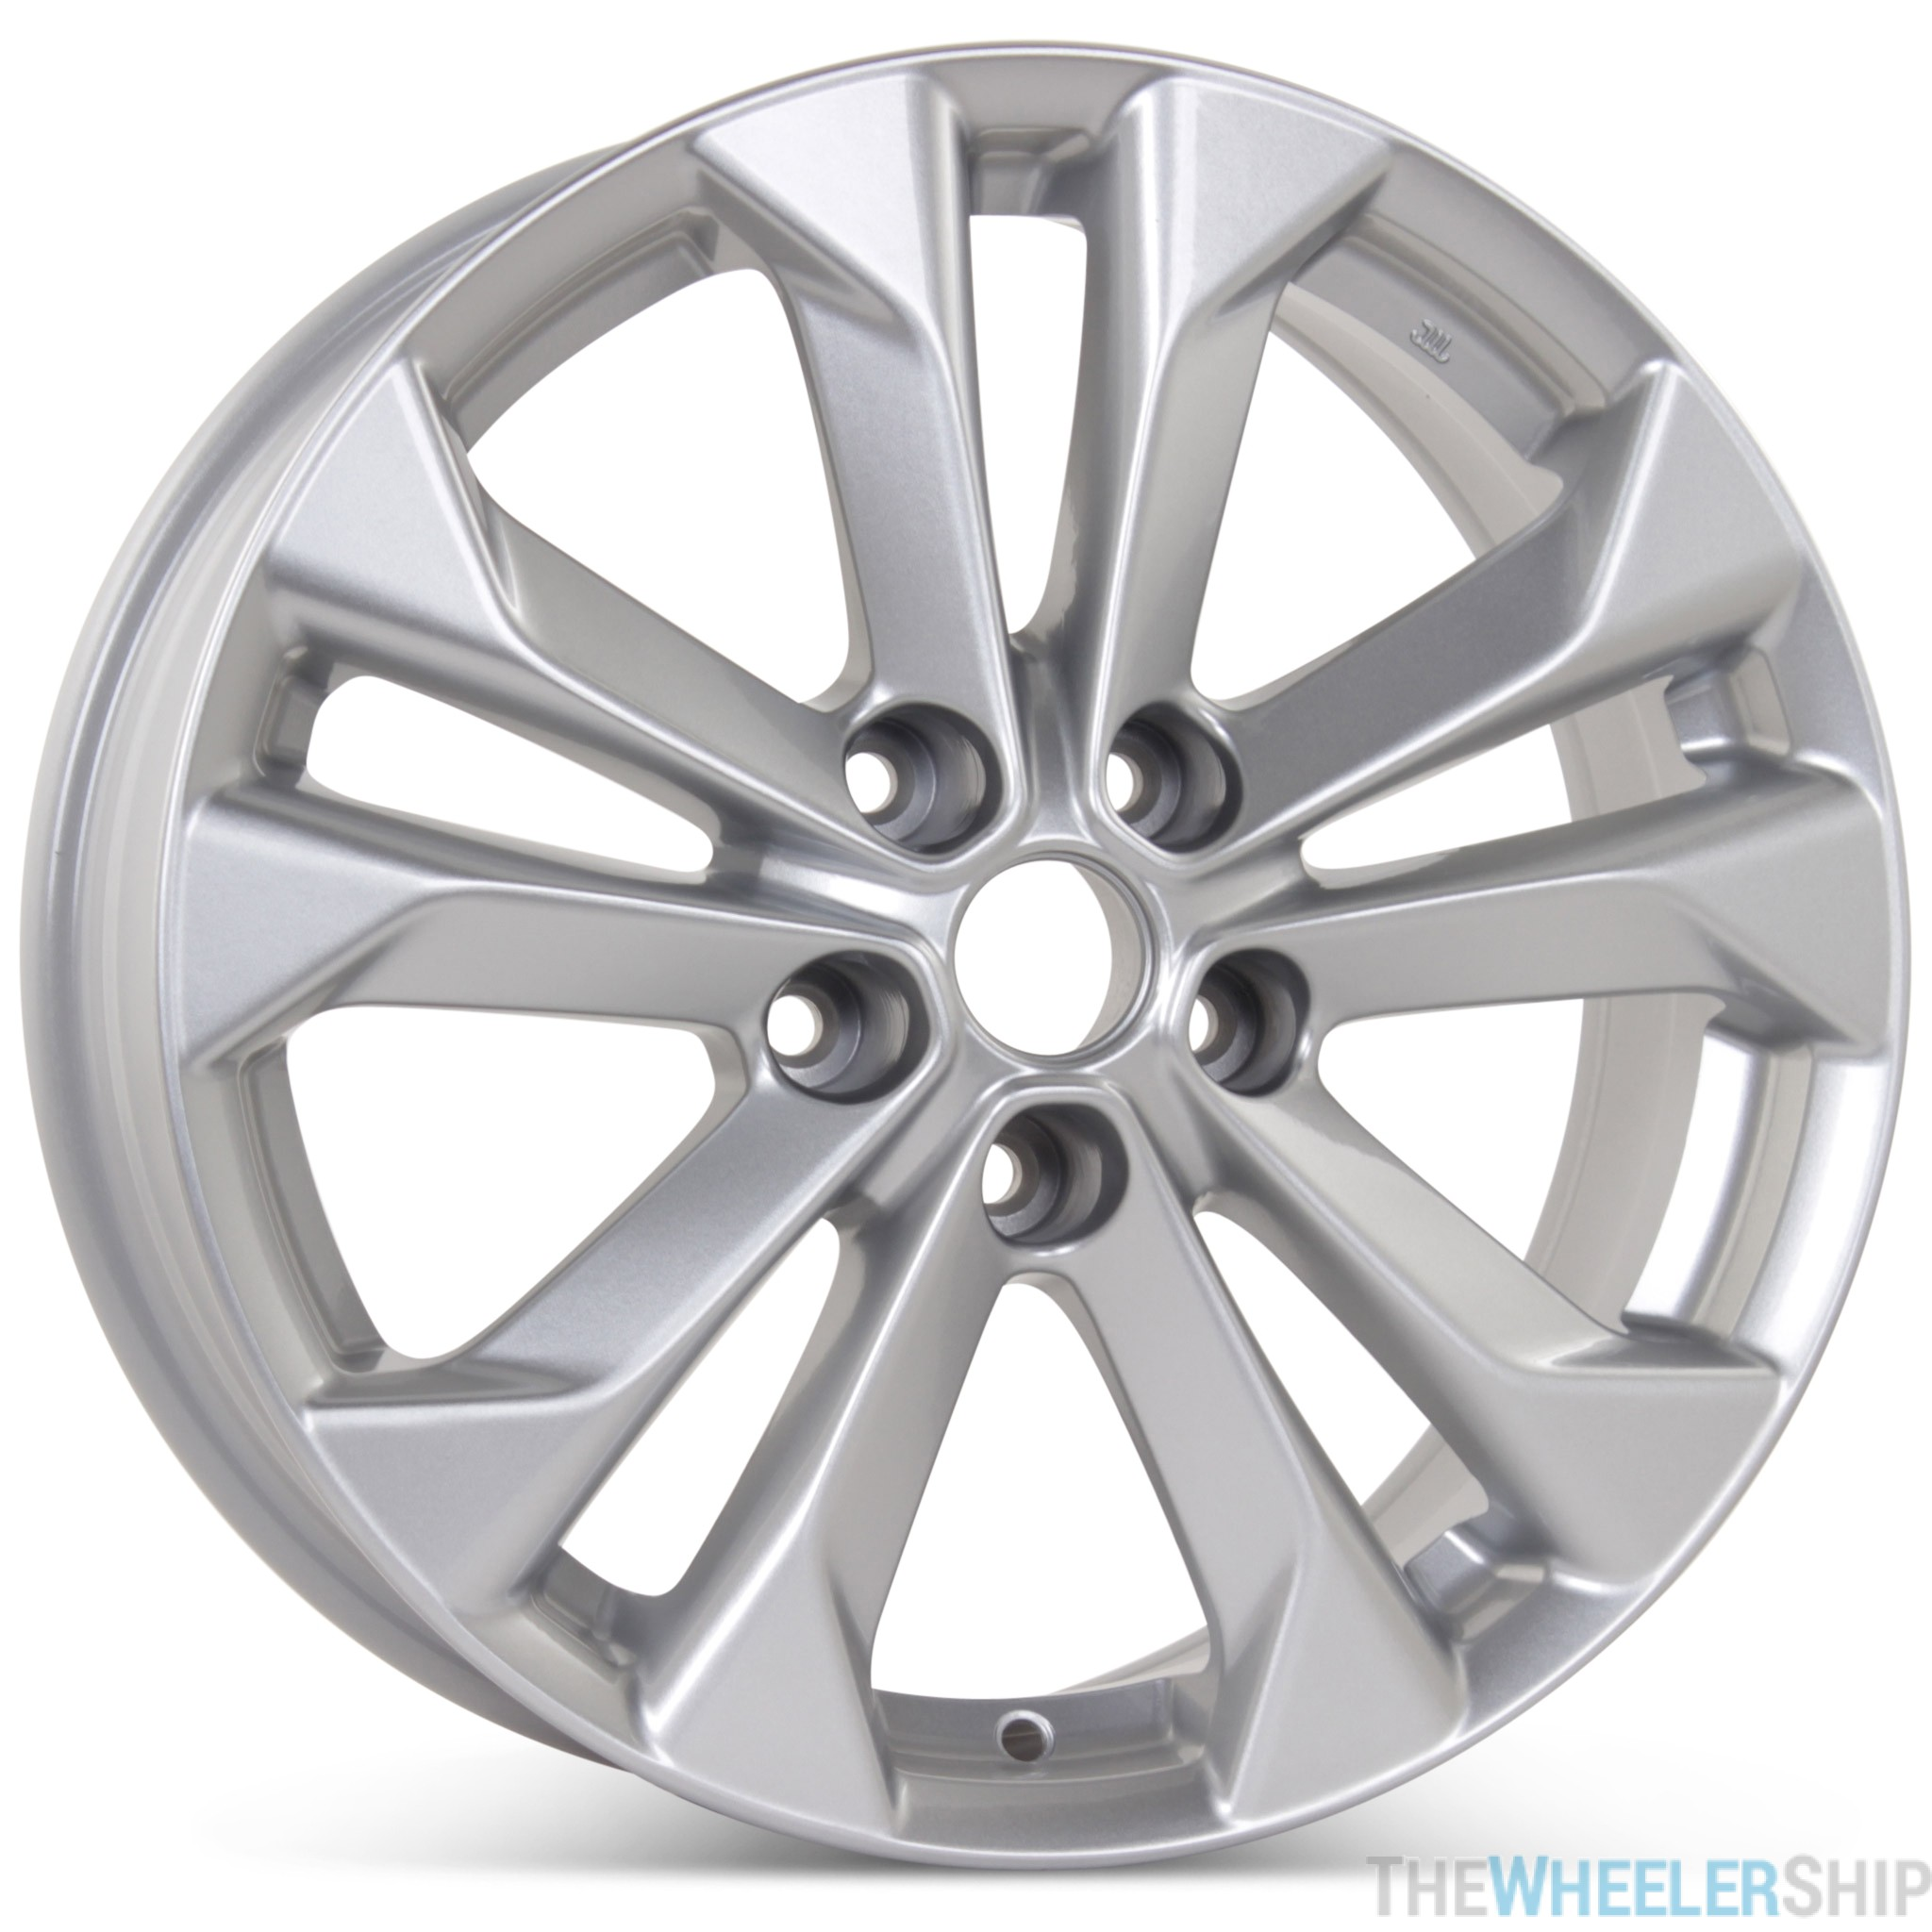 2014 2016 Nissan Rogue Wheels Nissan 17 Inch Alloy Wheels